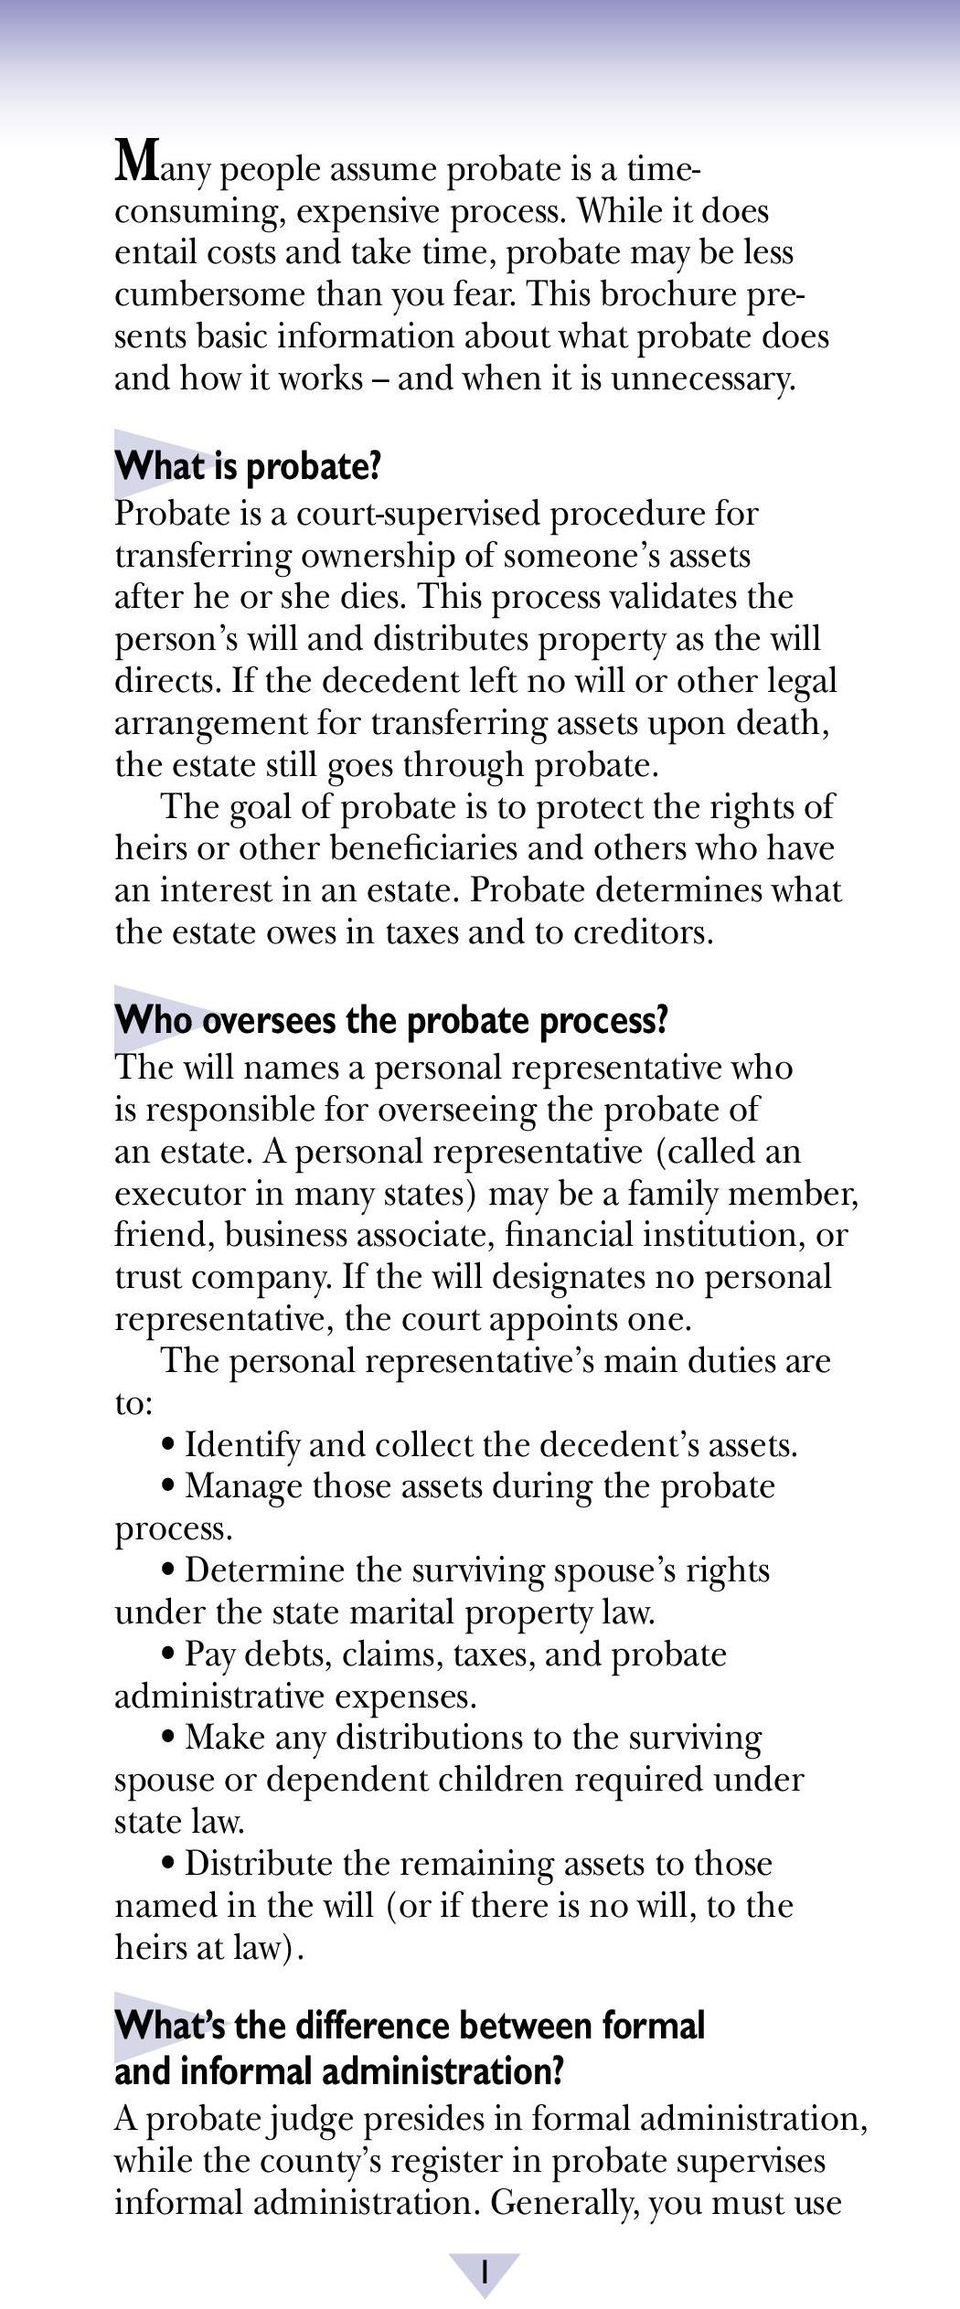 Probate is a court-supervised procedure for transferring ownership of someone s assets after he or she dies. This process validates the person s will and distributes property as the will directs.